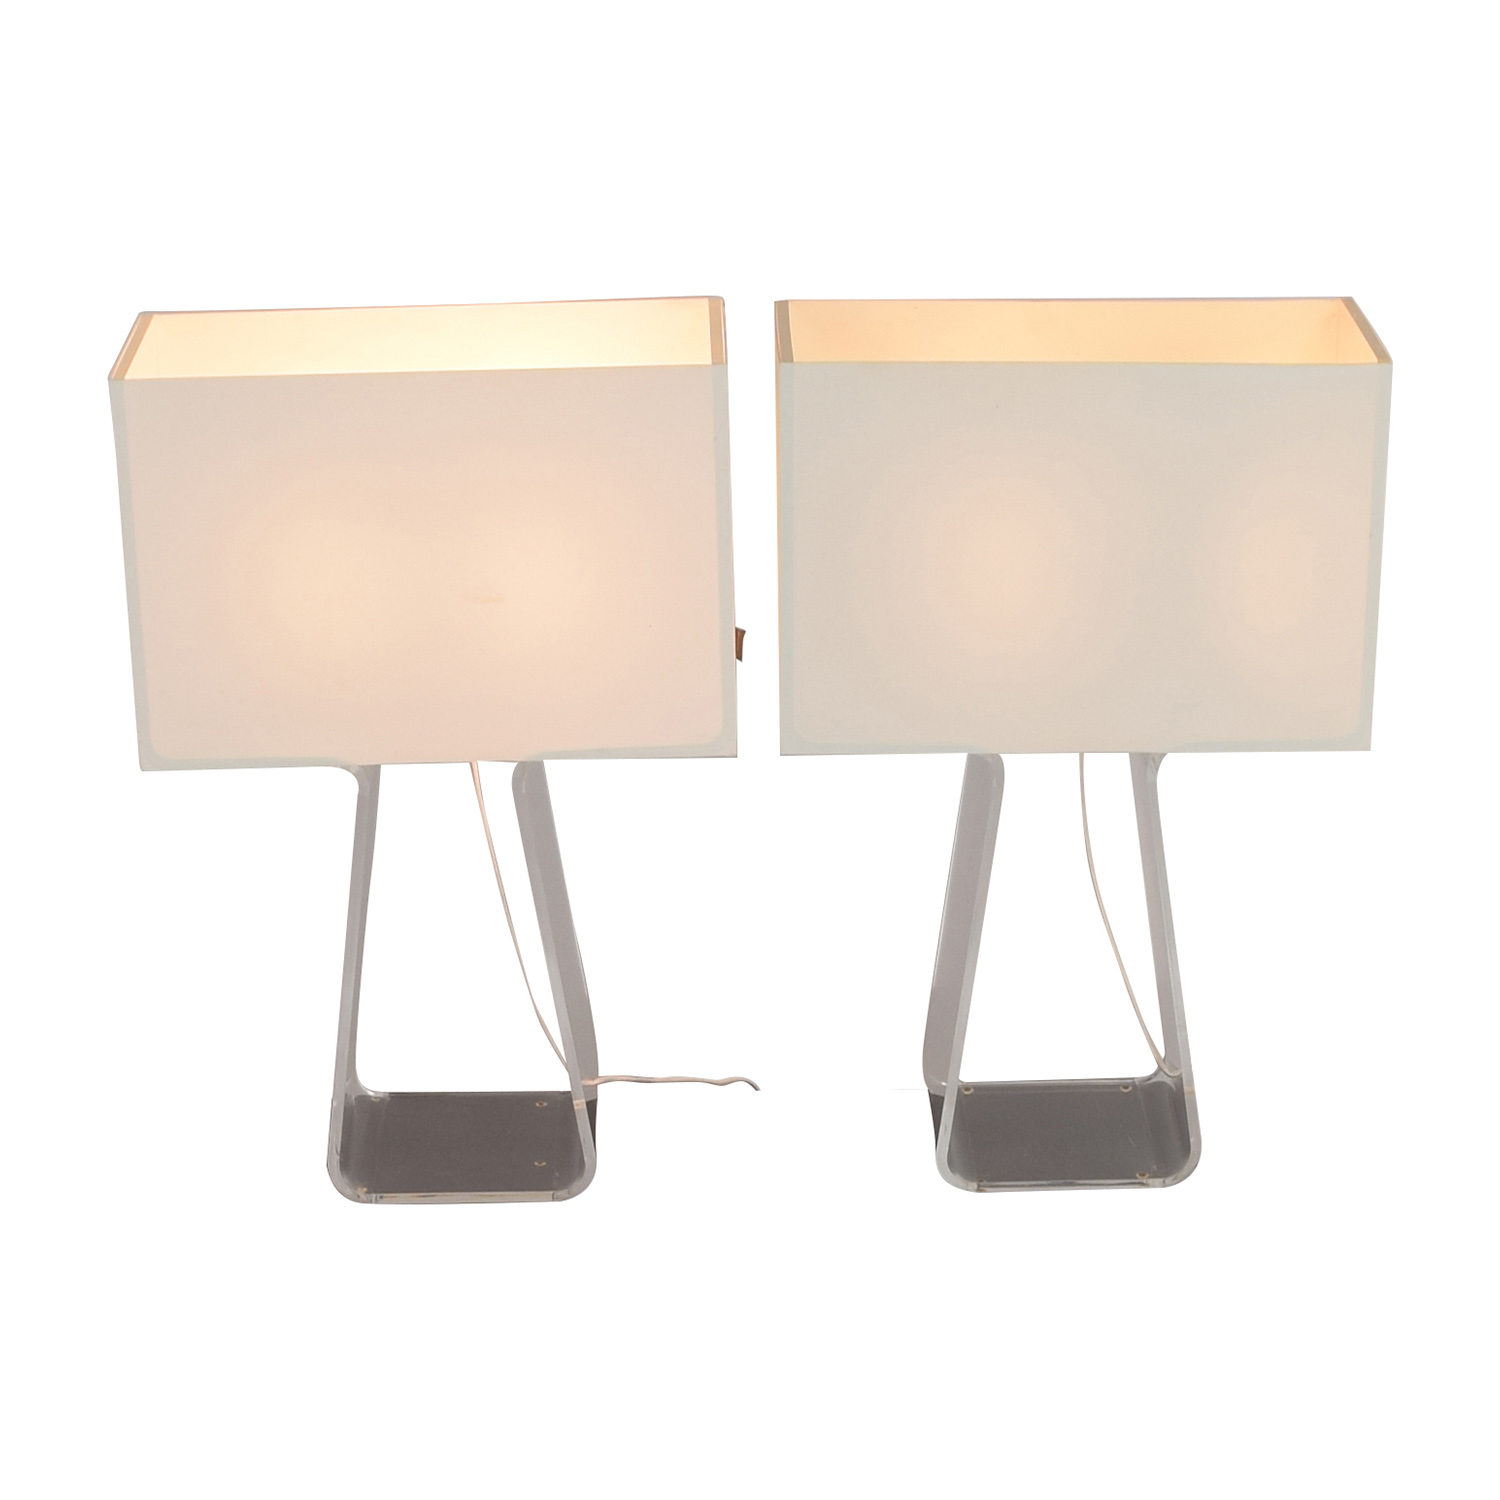 Room & Board Room & Board Formline Table Lamps used